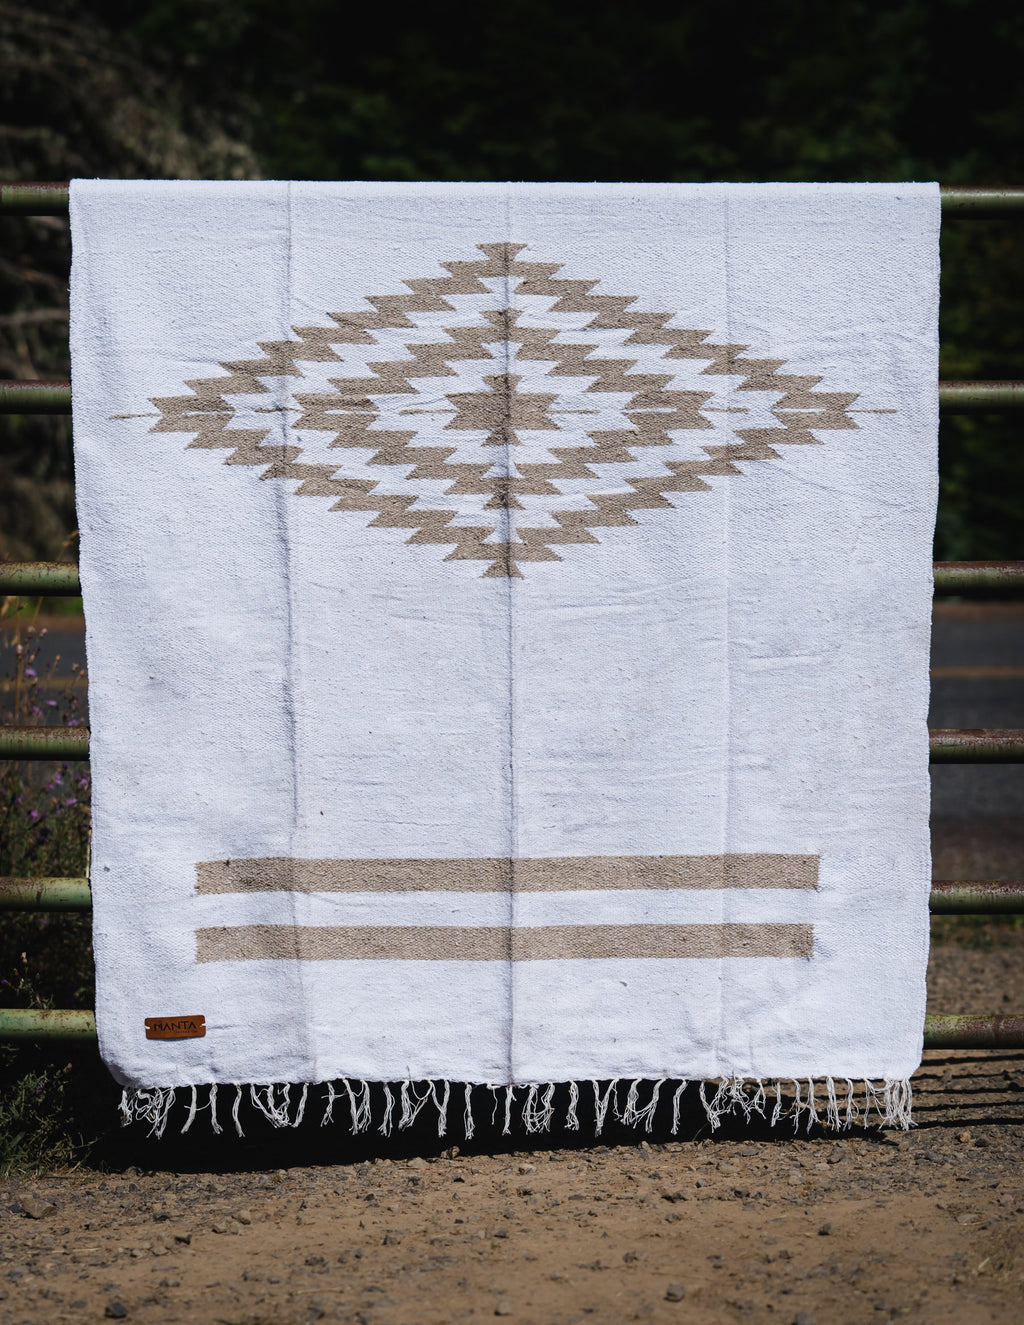 Cerritos Tan Diamond Blanket - Mantacompany.com